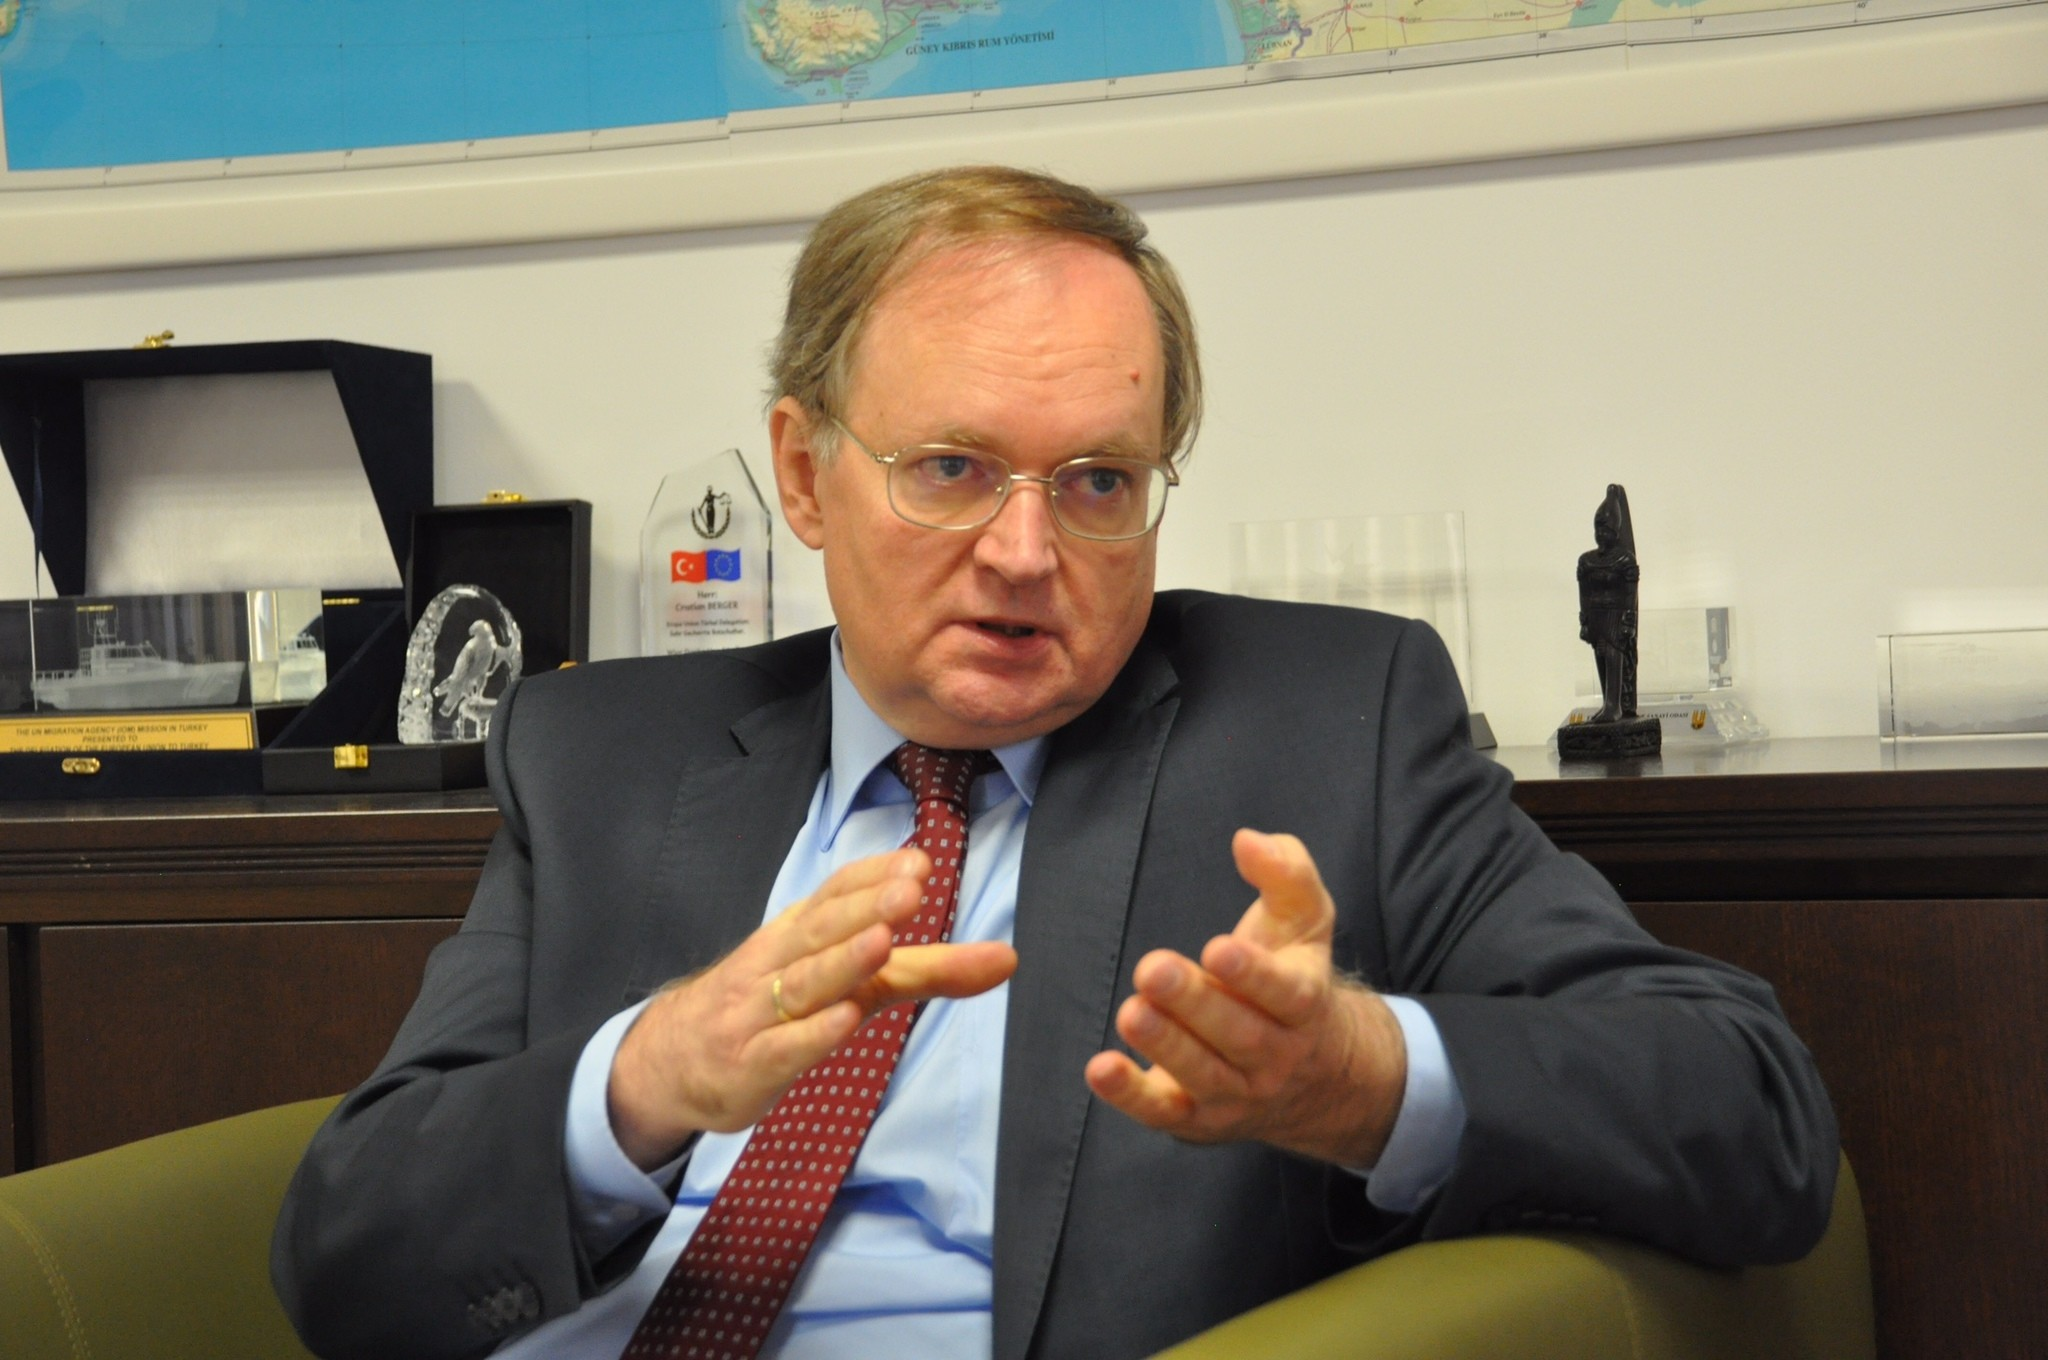 Regarding the recent developments in Syriau2019s Idlib, Christian Berger said that the EU shares the same position as Turkey and is in favor of a political solution.